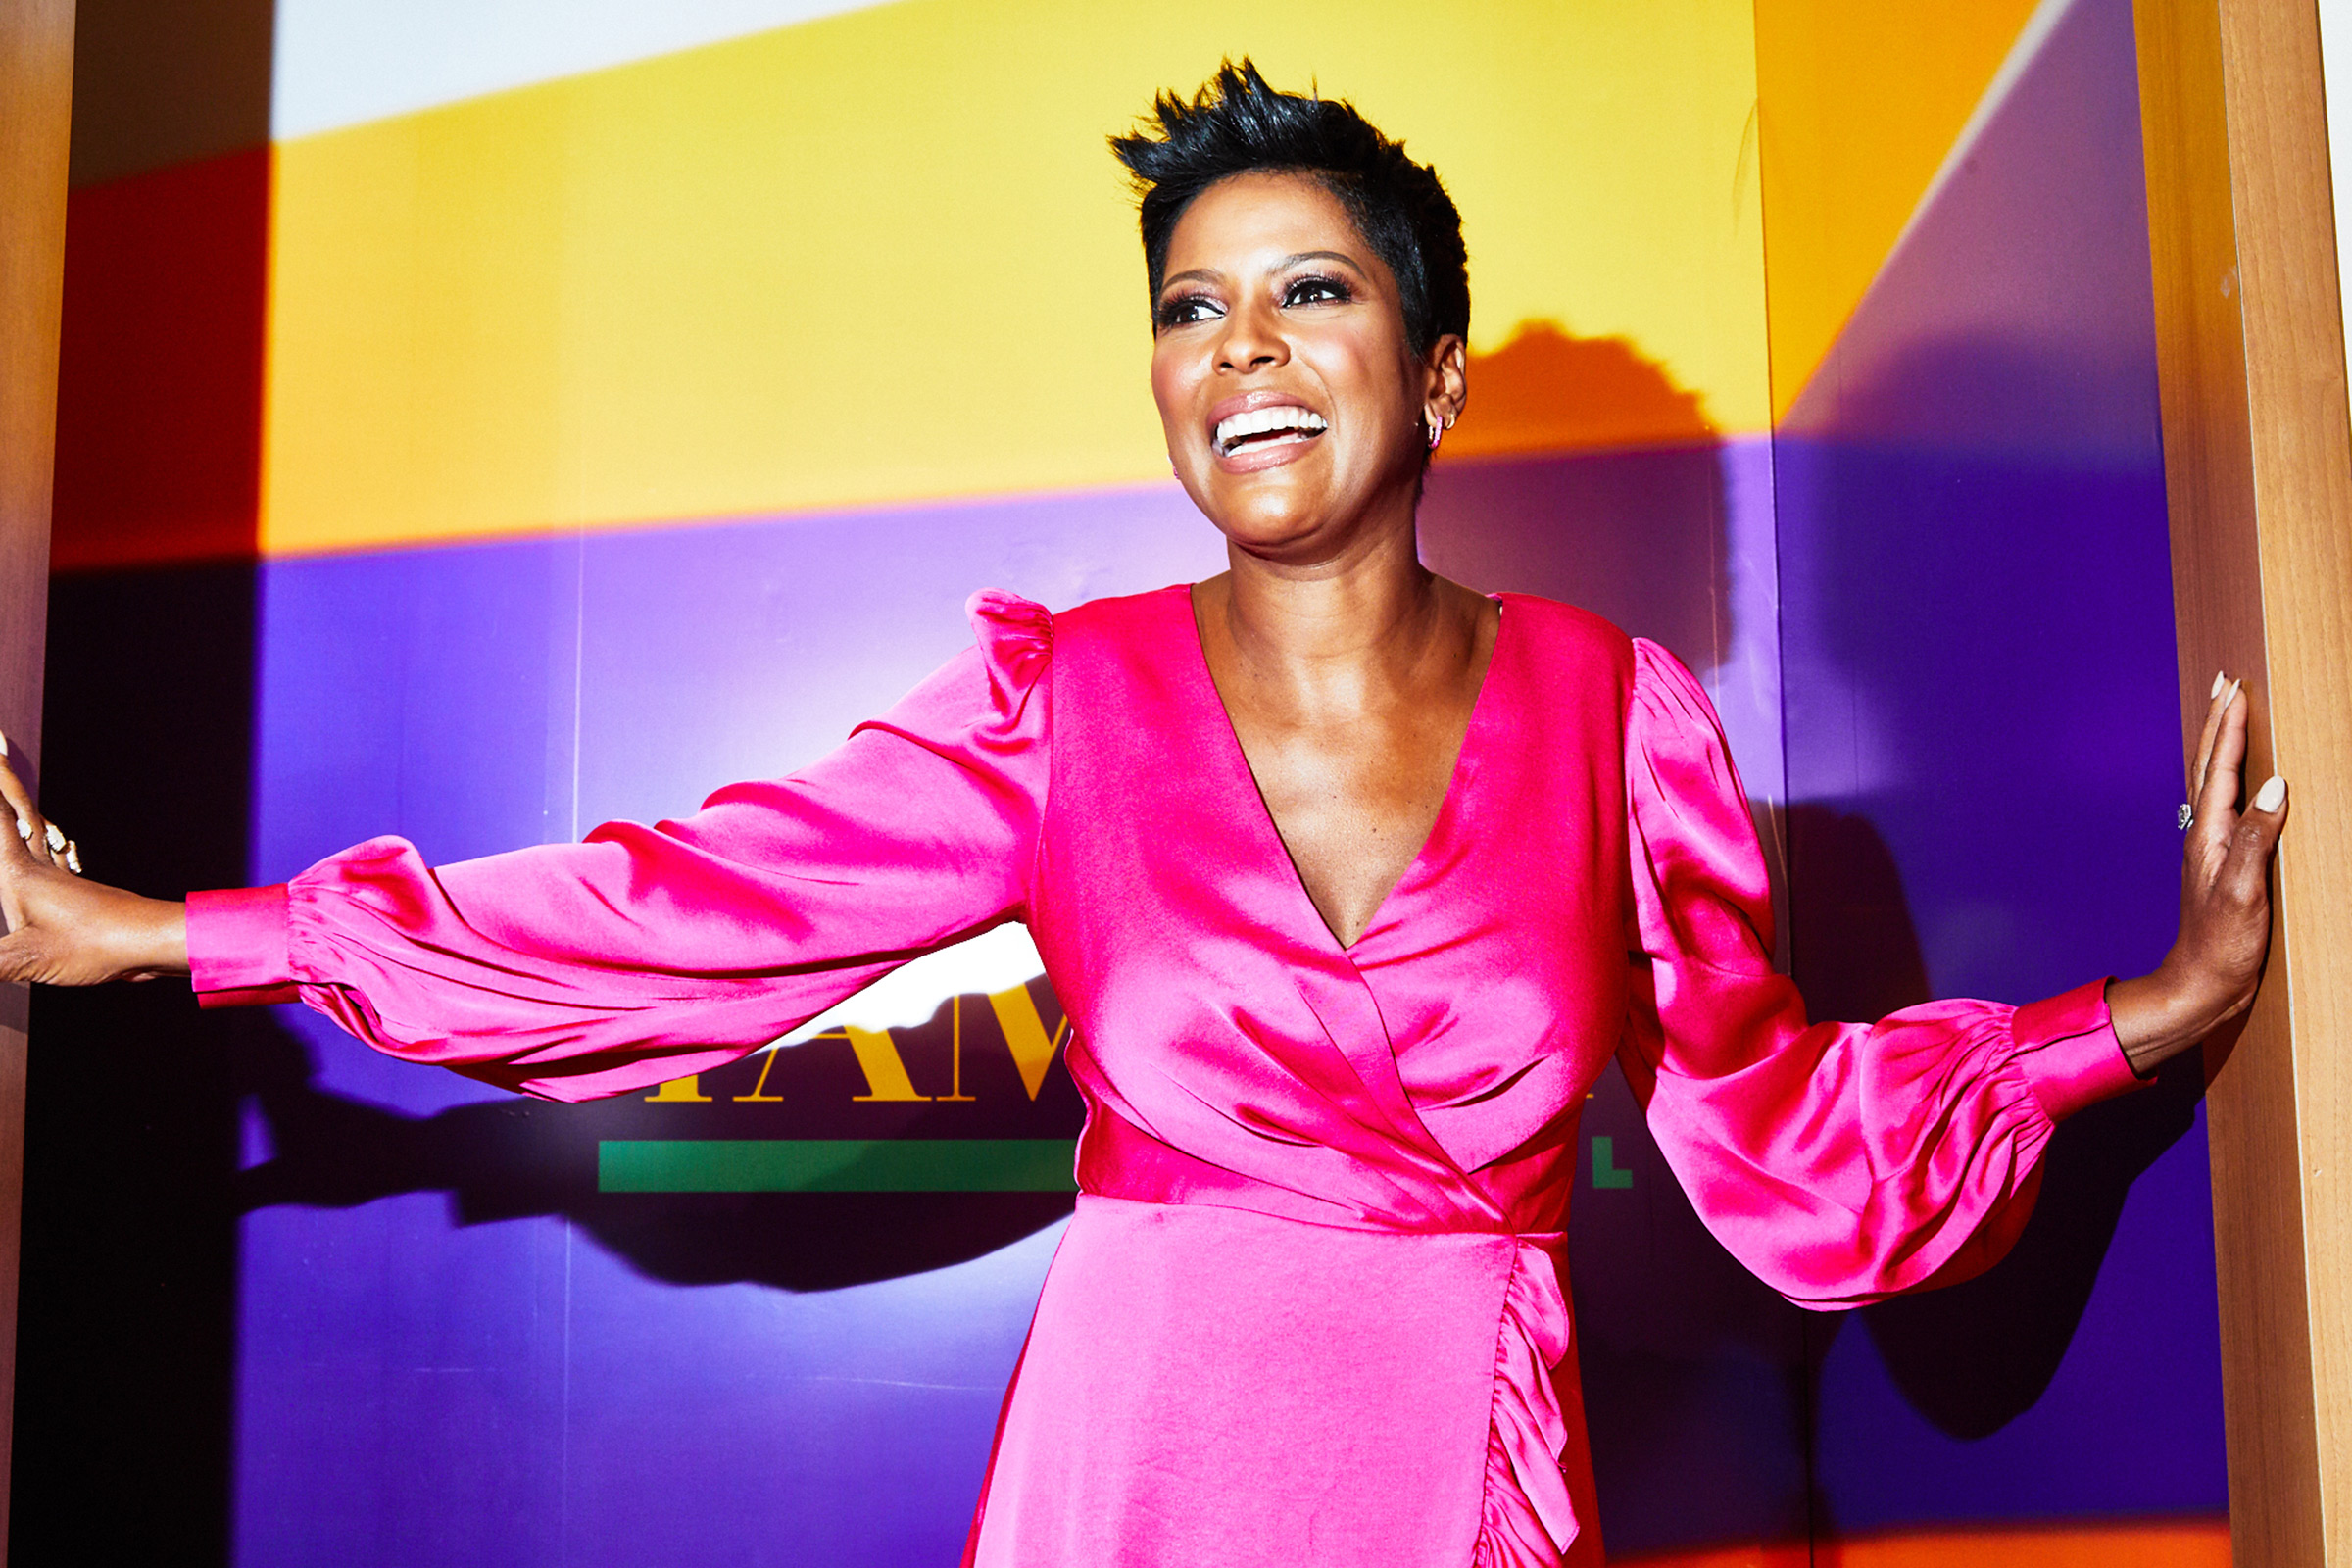 Talk show host Tamron Hall photographed on the set of her new show Aug. 28, 2019